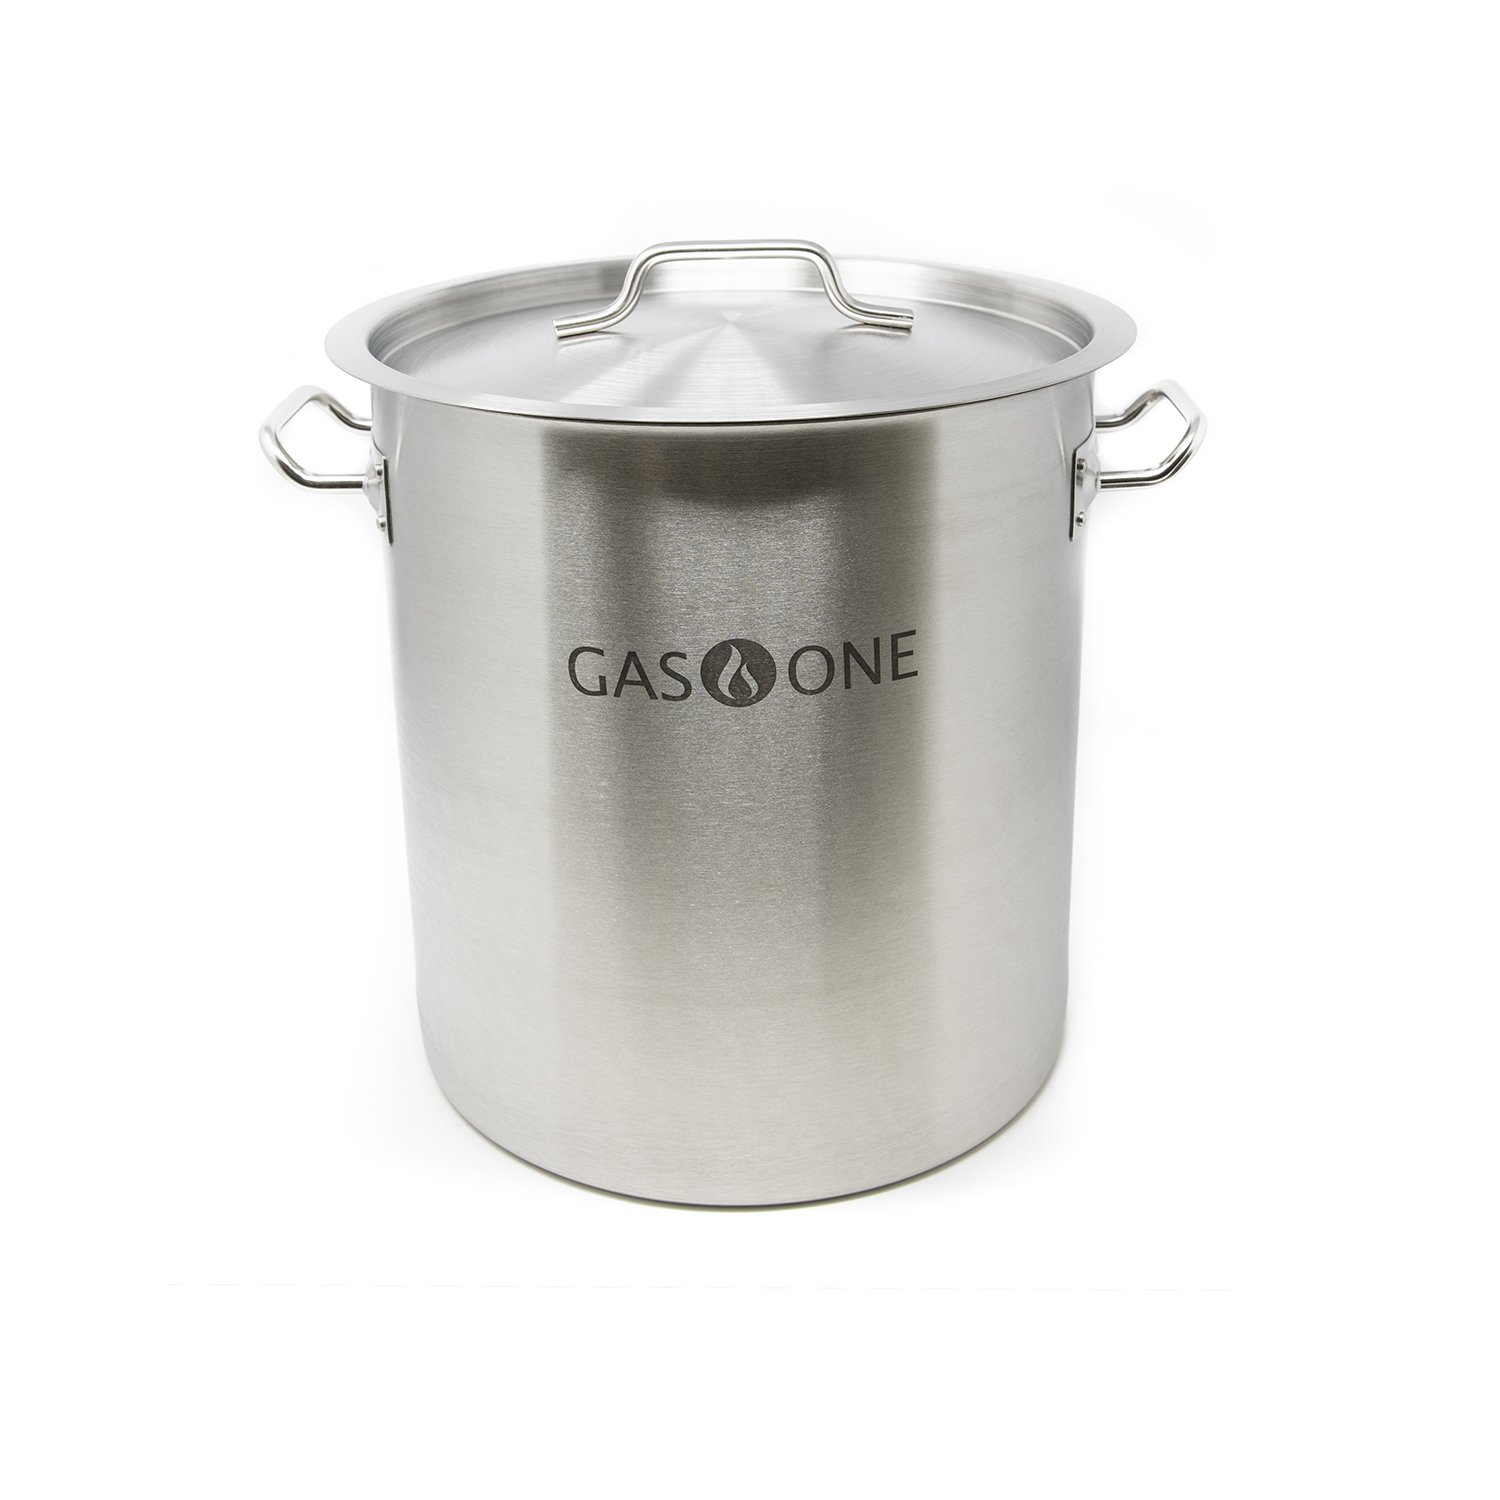 GasOne SP-32 Stainless Steel Brew Kettle Pot 8 Gallon 32 Quart Satin Finish with Lid/Cover by GasOne